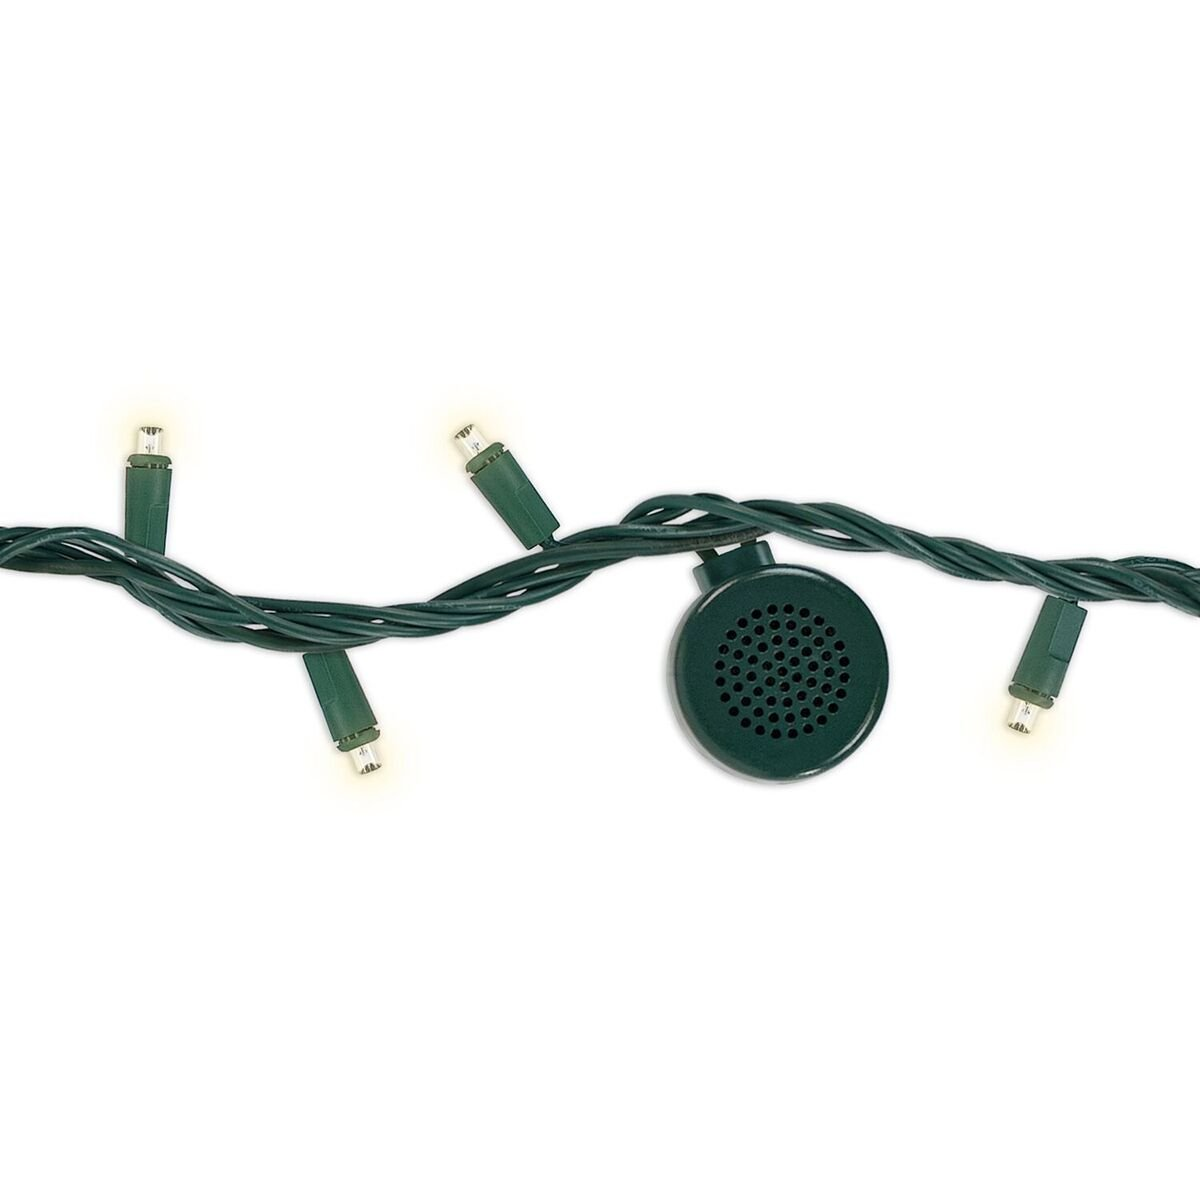 Bright Tunes Decorative String Lights with Bluetooth Speakers, Warm White LED Lights, Green Cord